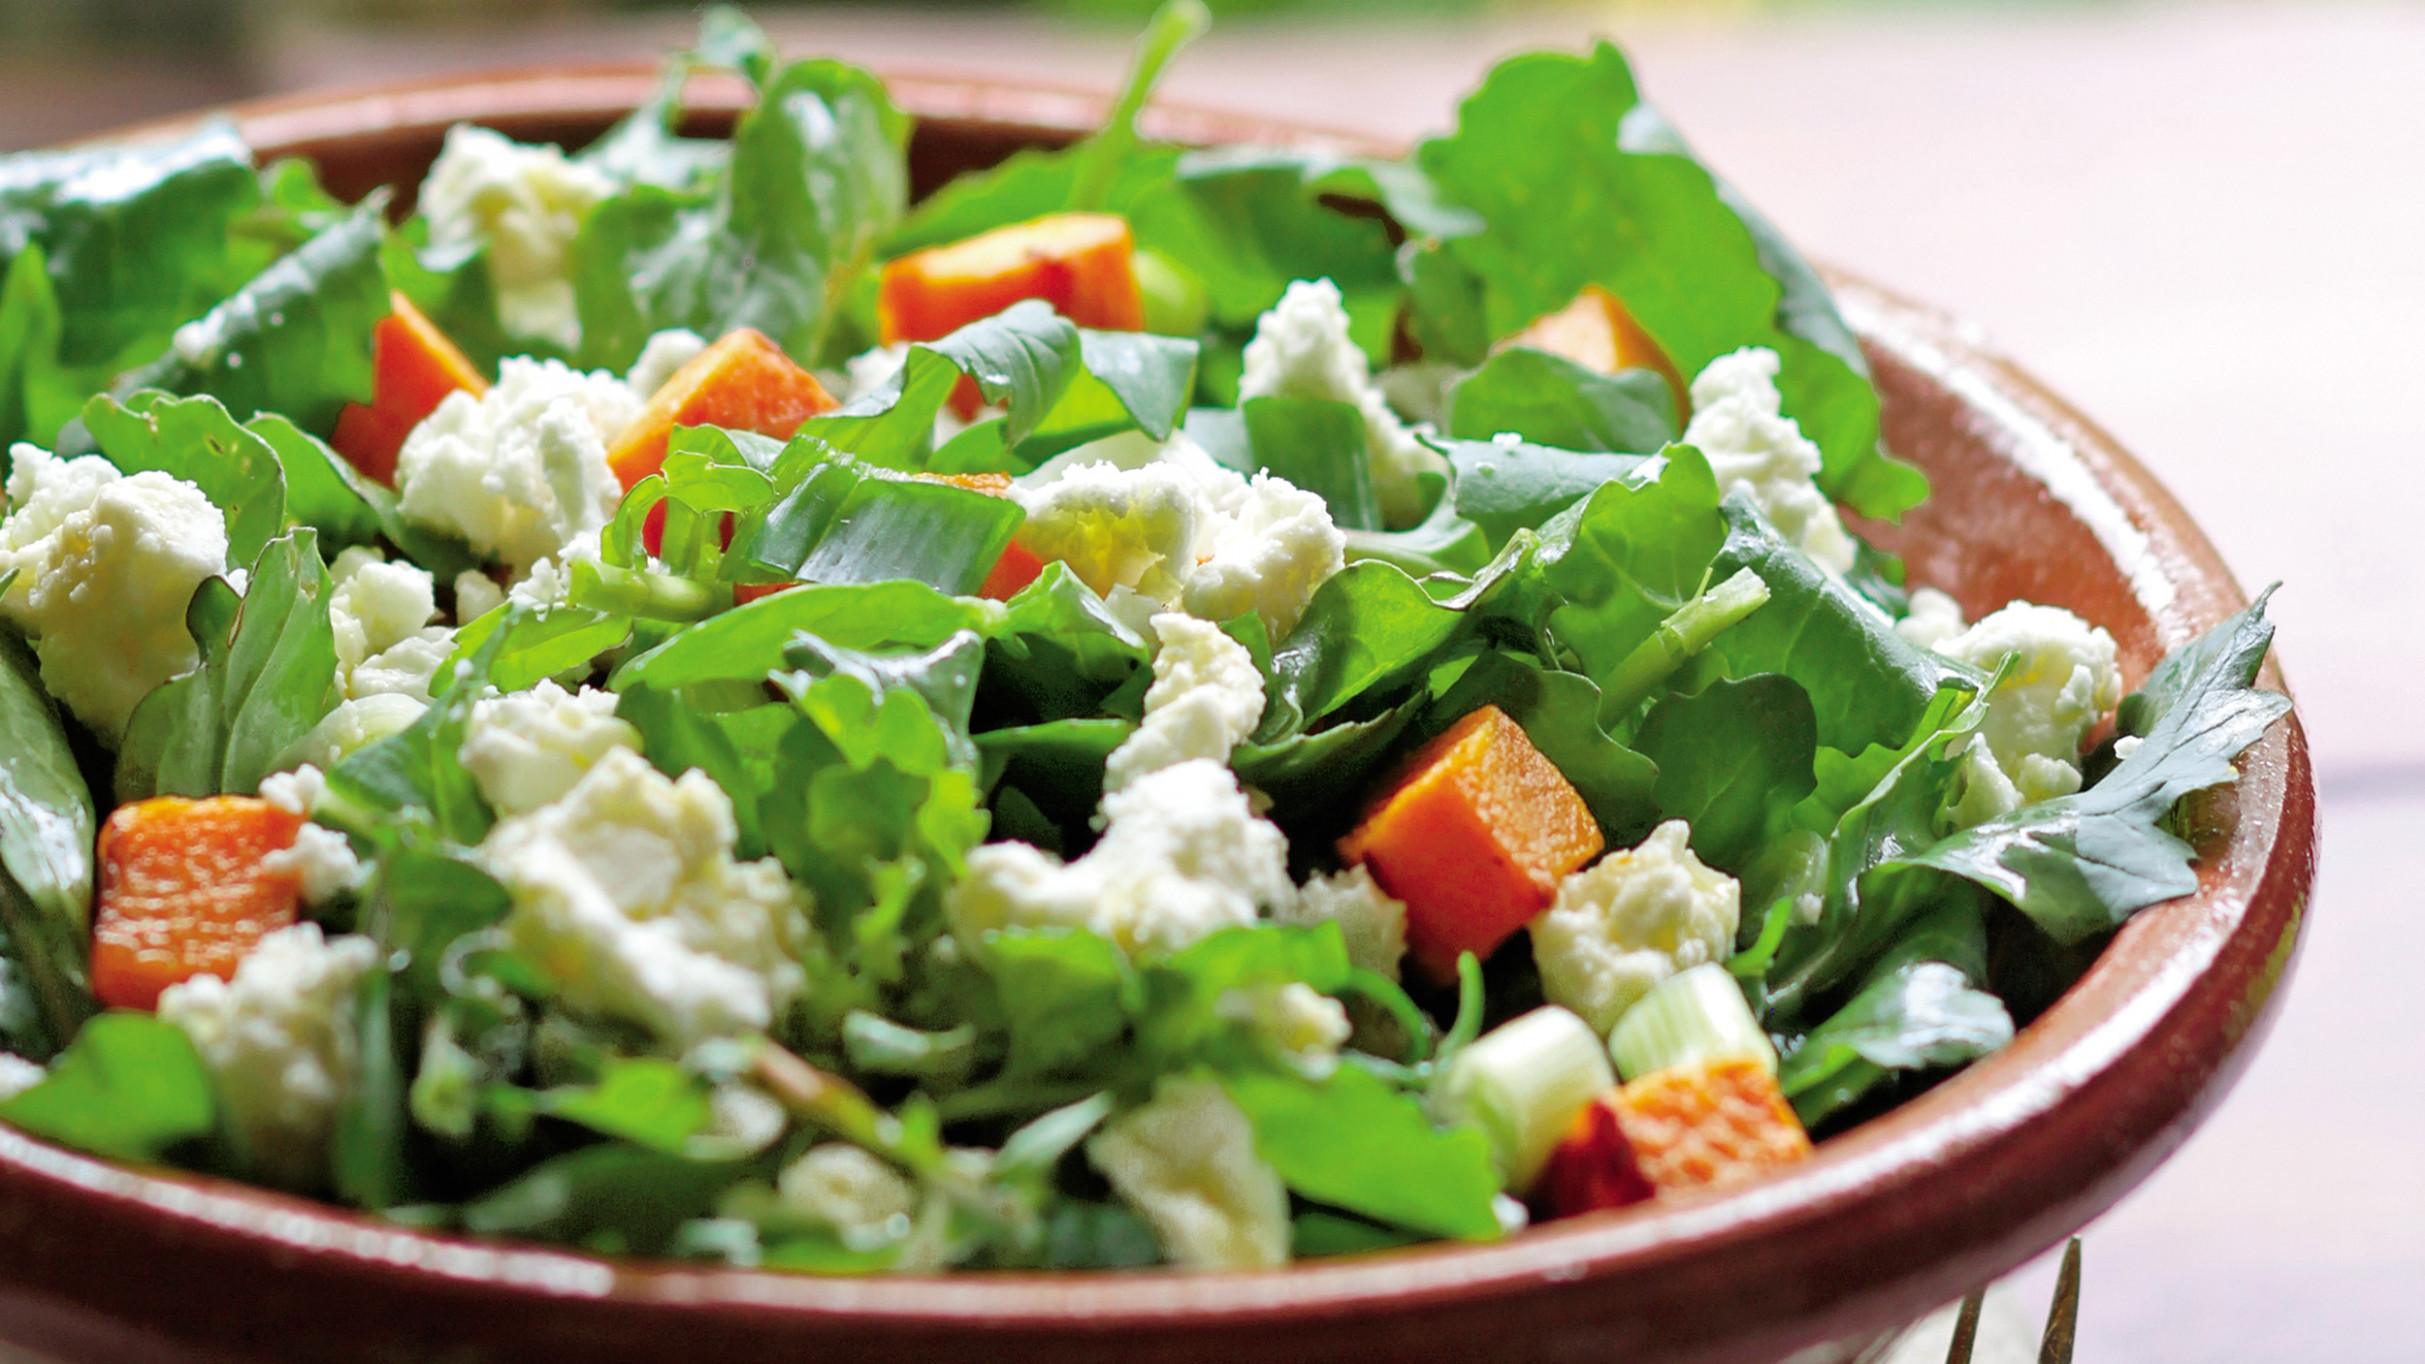 Healthy eating secrets and 3 super salad recipes from ..